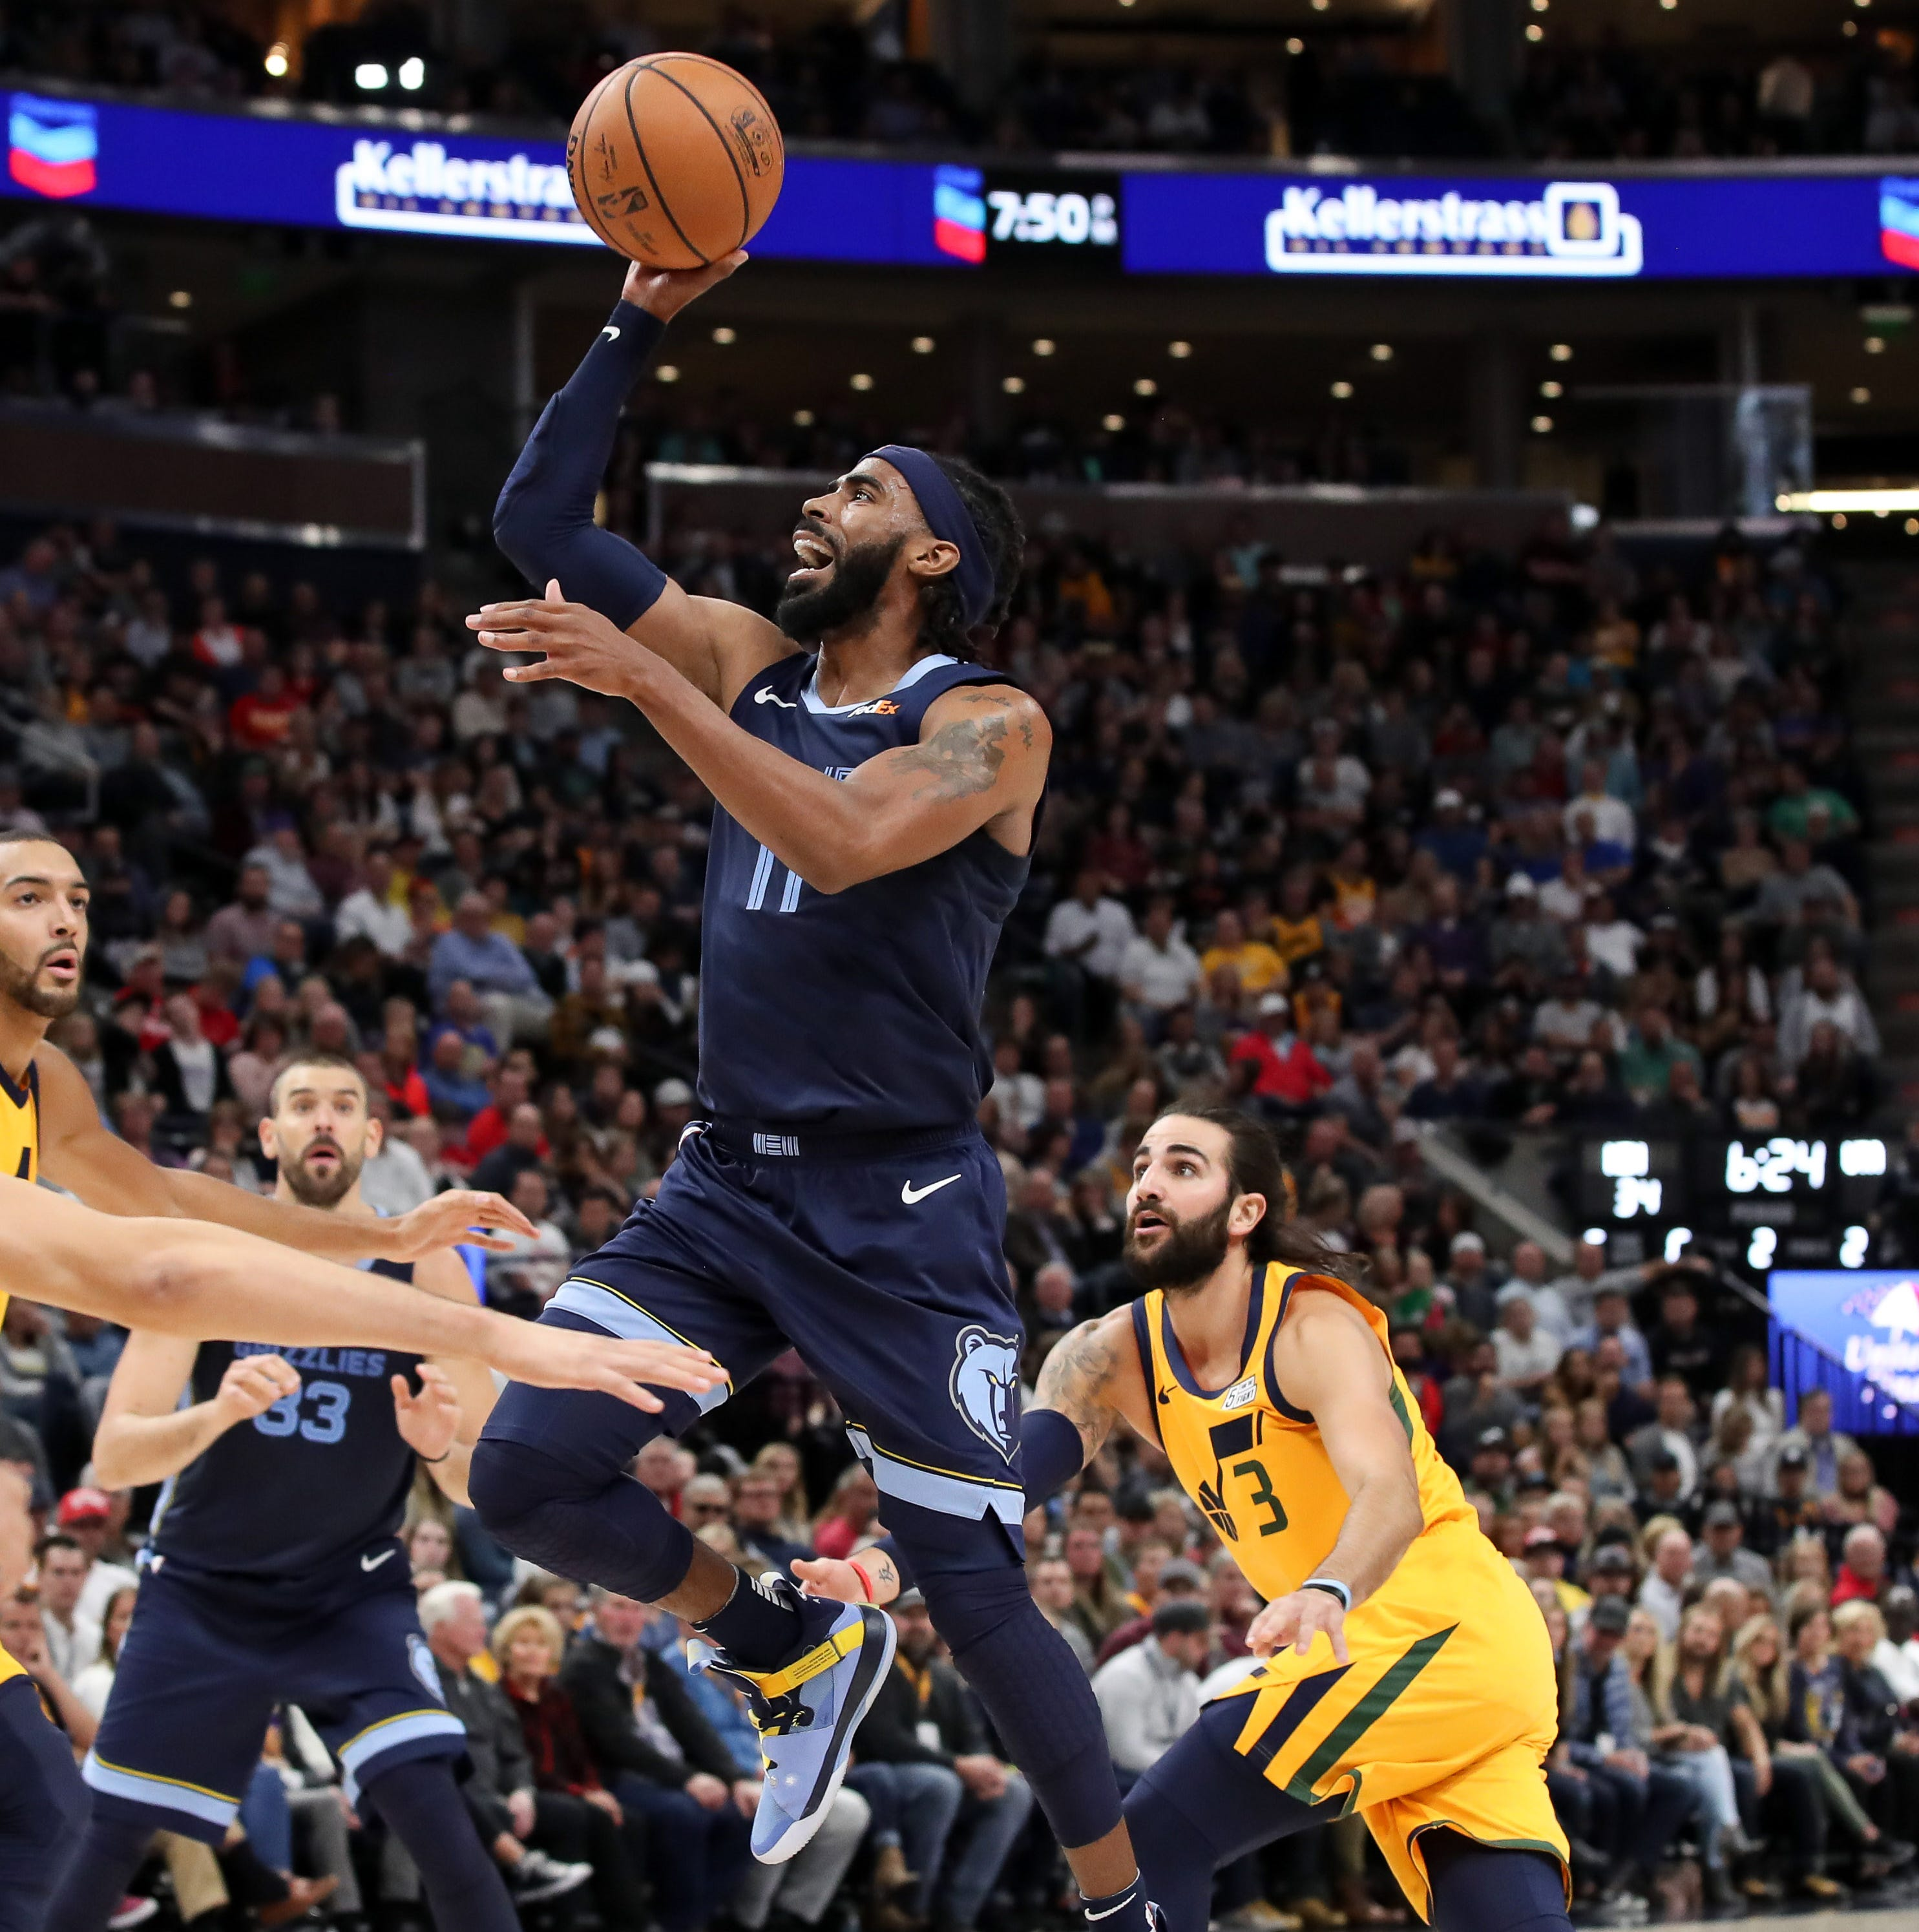 Grizzlies: Five things we learned from upset win vs Utah Jazz